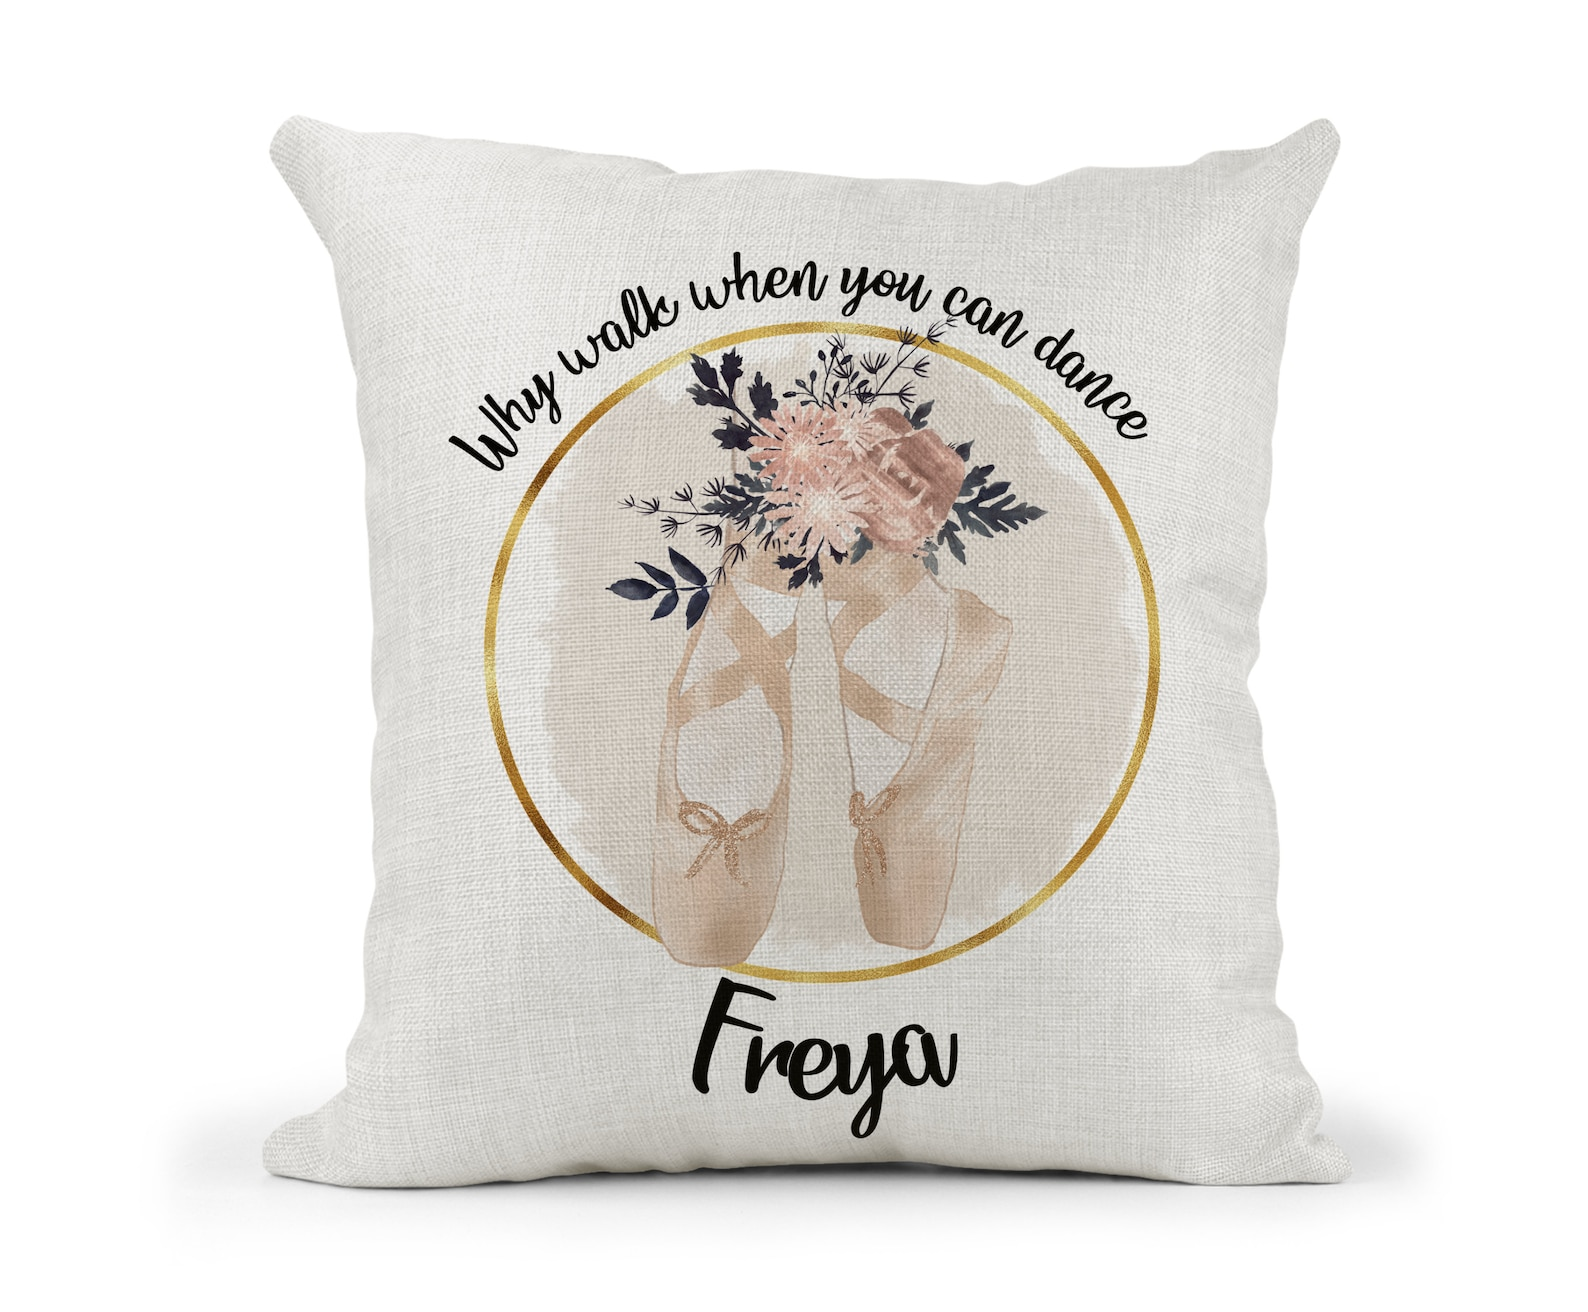 personalised cream cushion.rose gold ballet shoes with floral design. girls bedroom decor. birthday gift.. why walk when you can